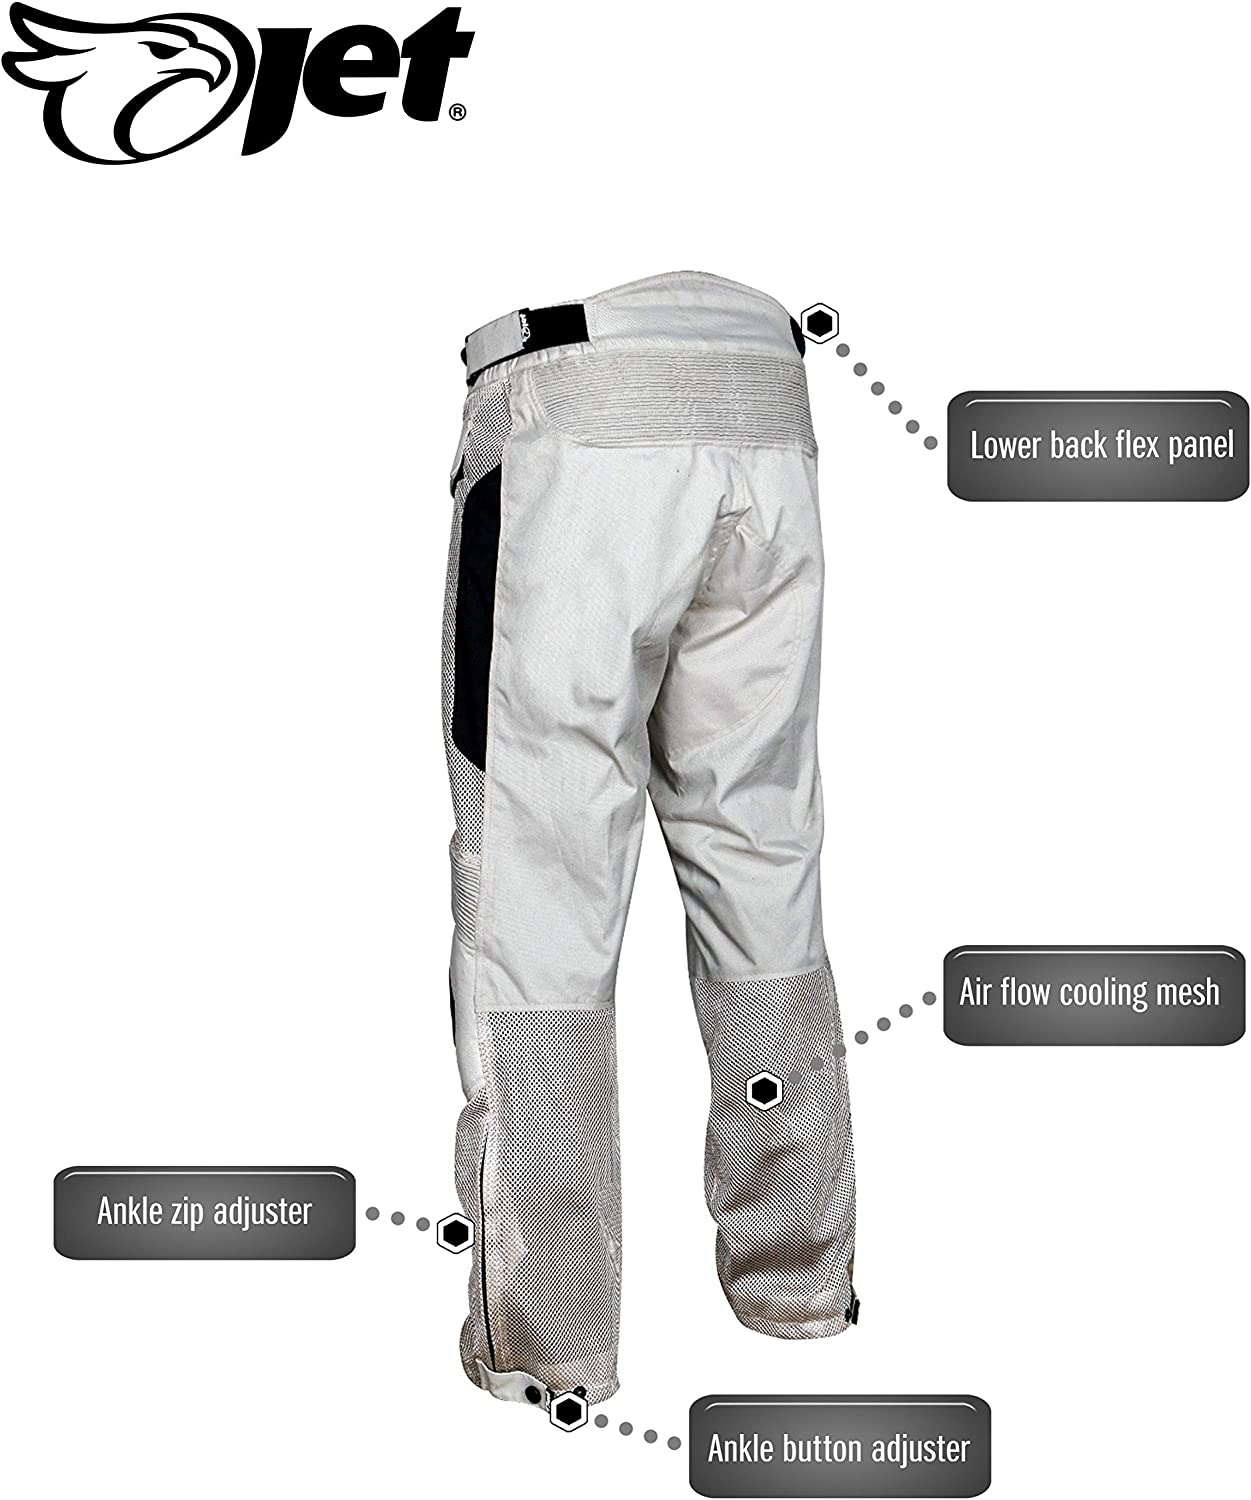 W 38 L 30, Silver JET Mens Motorcycle Motorbike Mesh Textile Summer Trousers Breathable Protective Armoured VENT-X